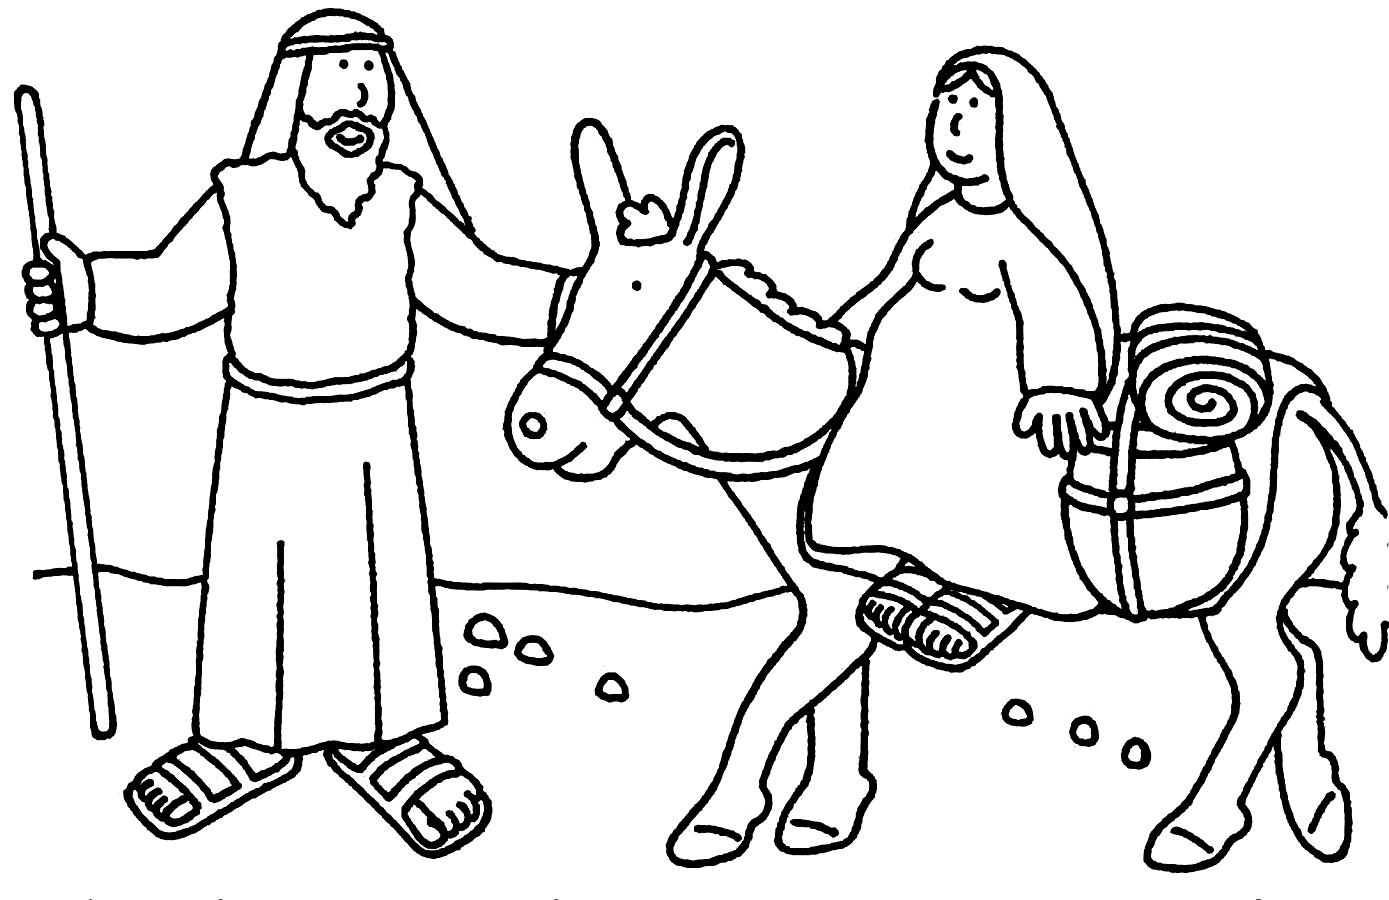 free christian christmas coloring pages printable the best free christian coloring page images download christian pages coloring printable christmas free